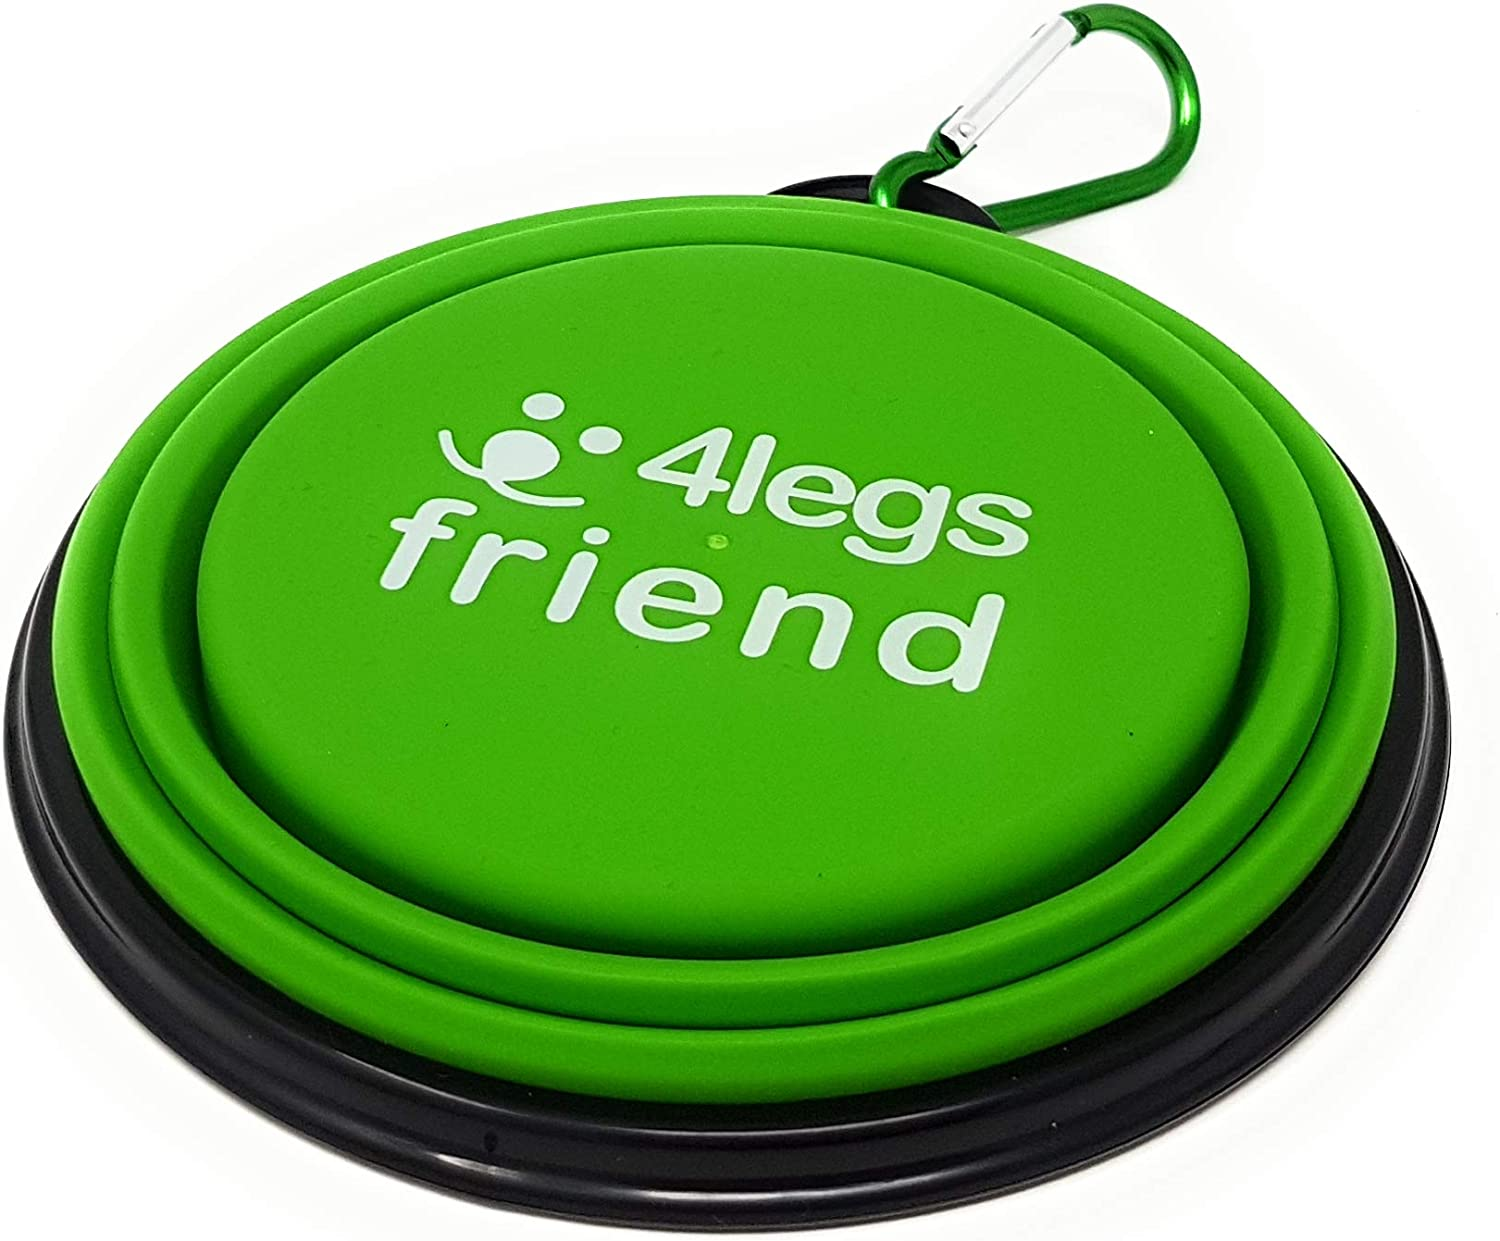 4LegsFriend Pet Bowls with Carabiner Clips | BPA Free Food Grade Silicon for Dog and Cat Expandable Travel Bowls Comes in 2 Sizes | Pop Out Dog Bowls